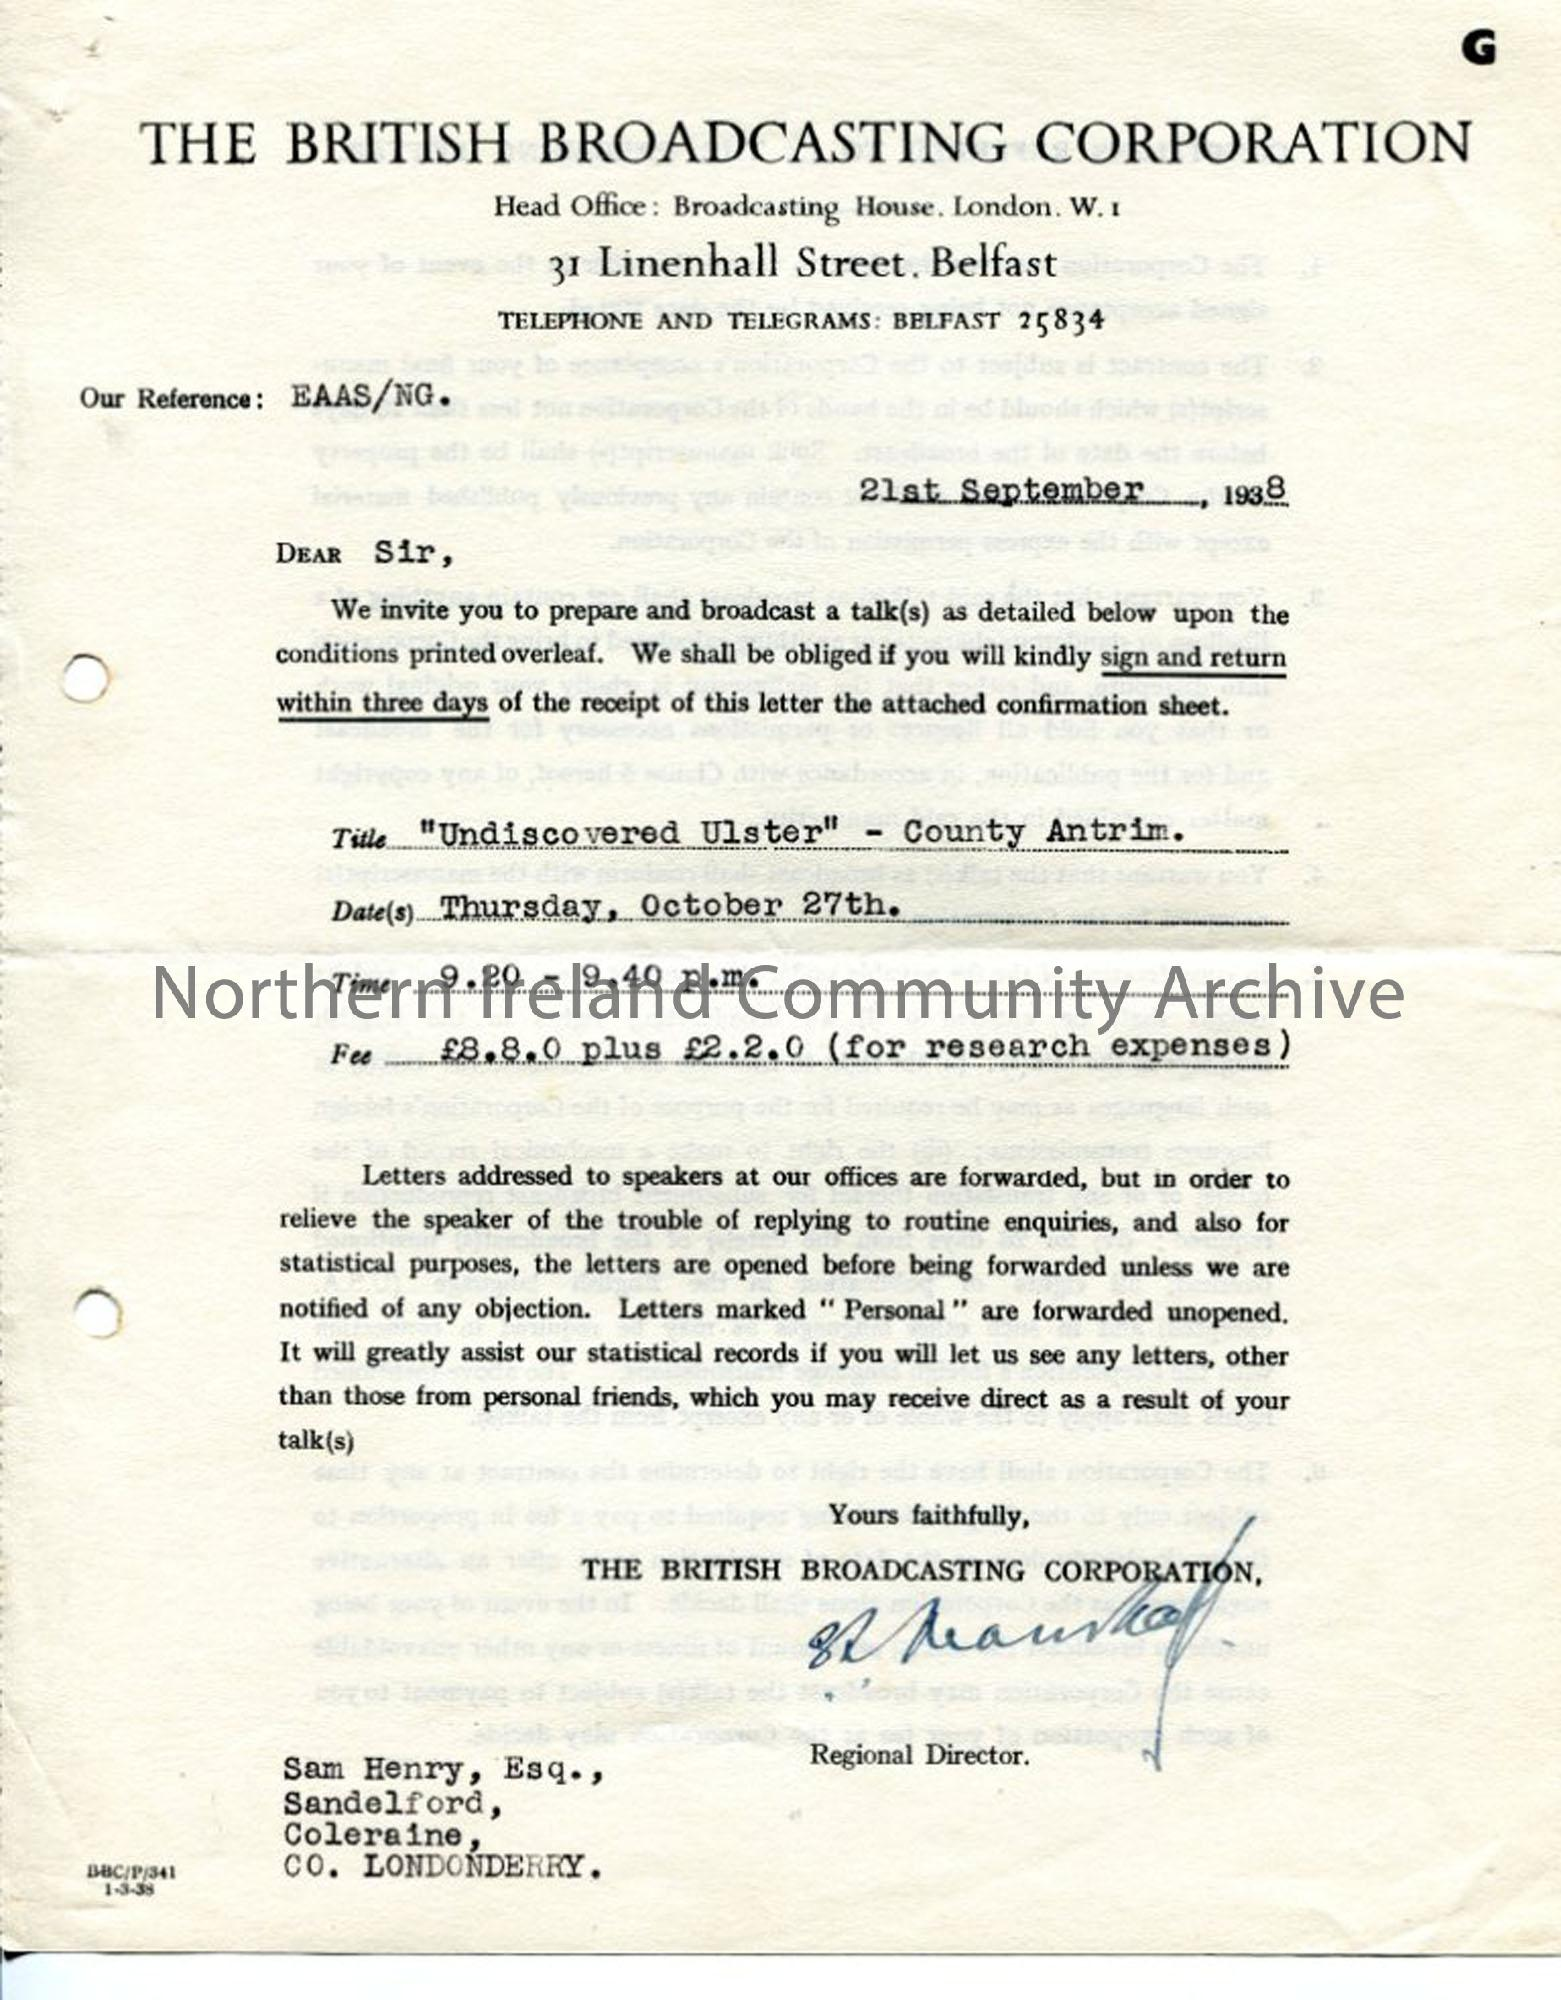 Formal Agreement from the BBC, dated 21.9.1938